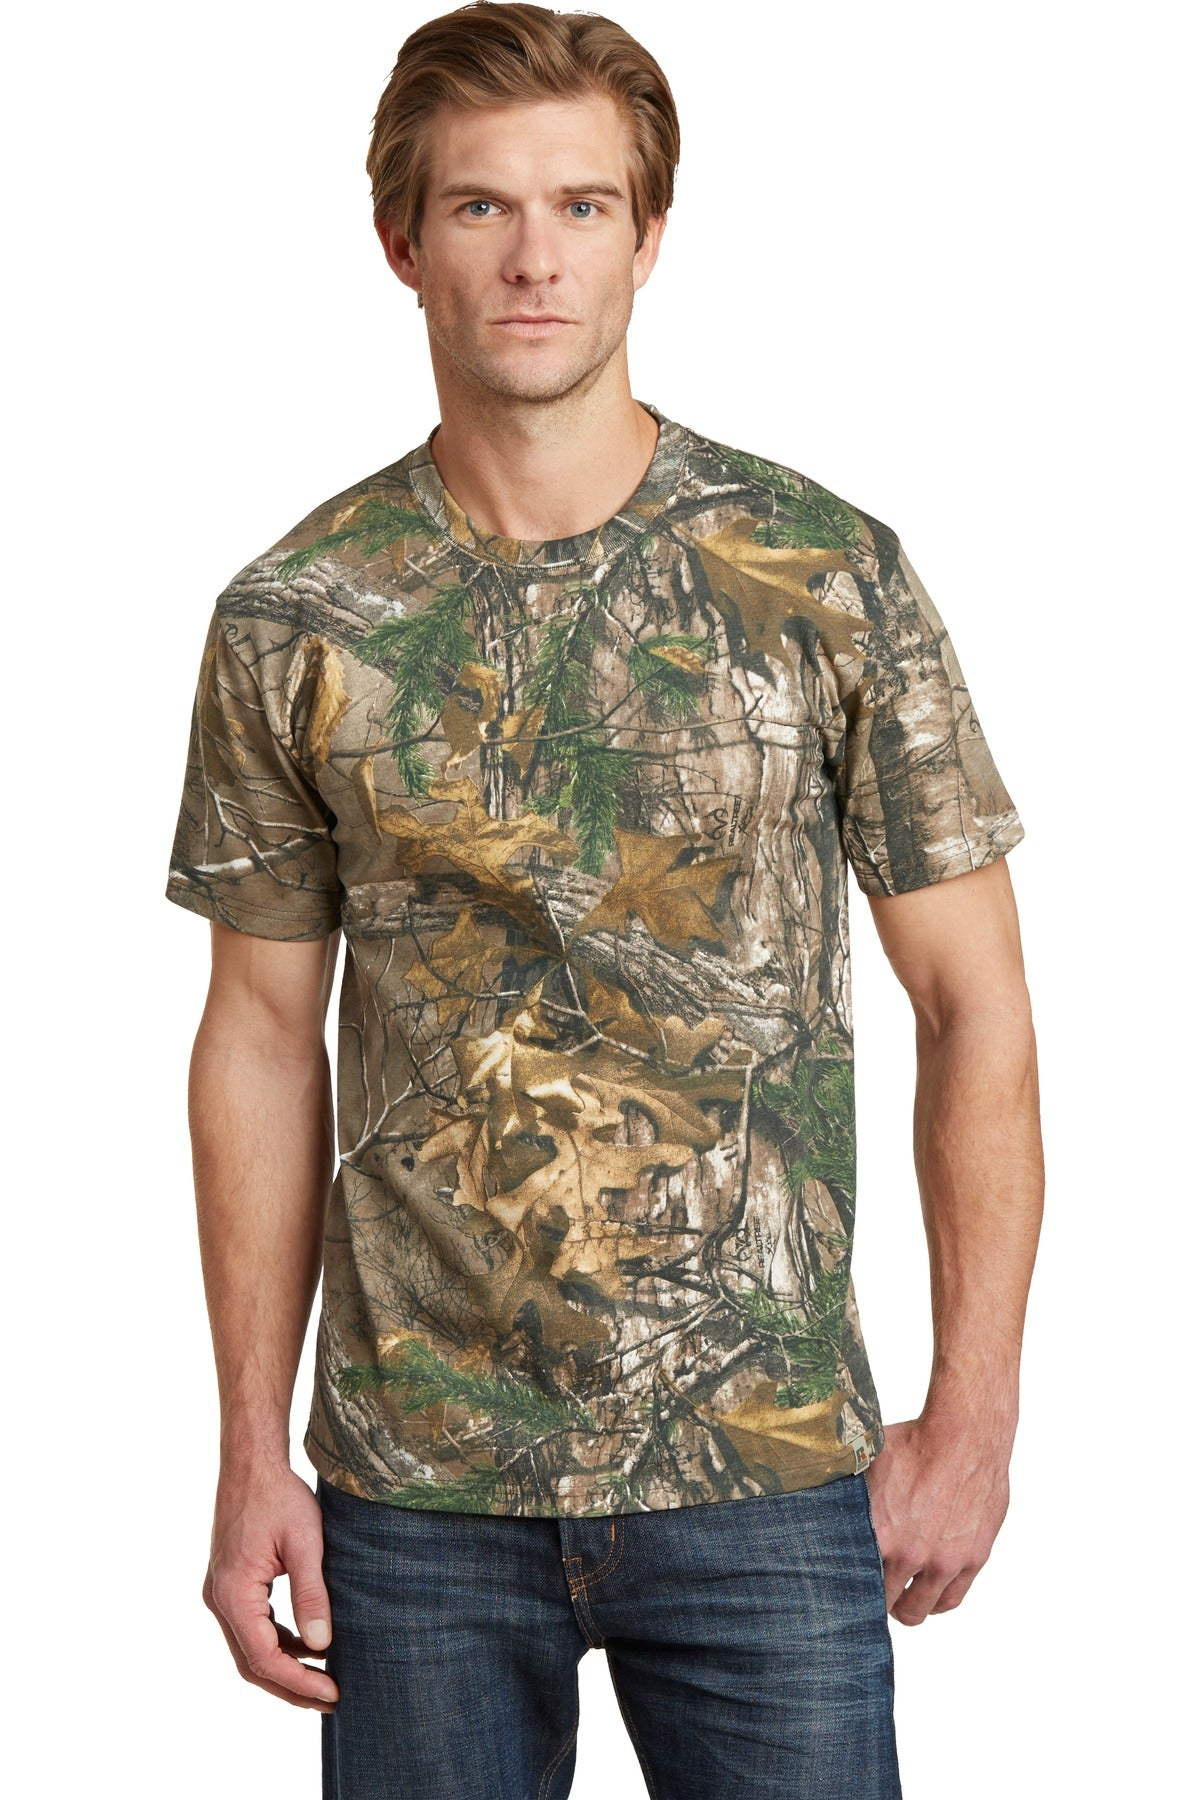 Russell Outdoors™ - Realtree® Explorer 100% Cotton T-Shirt. NP0021R